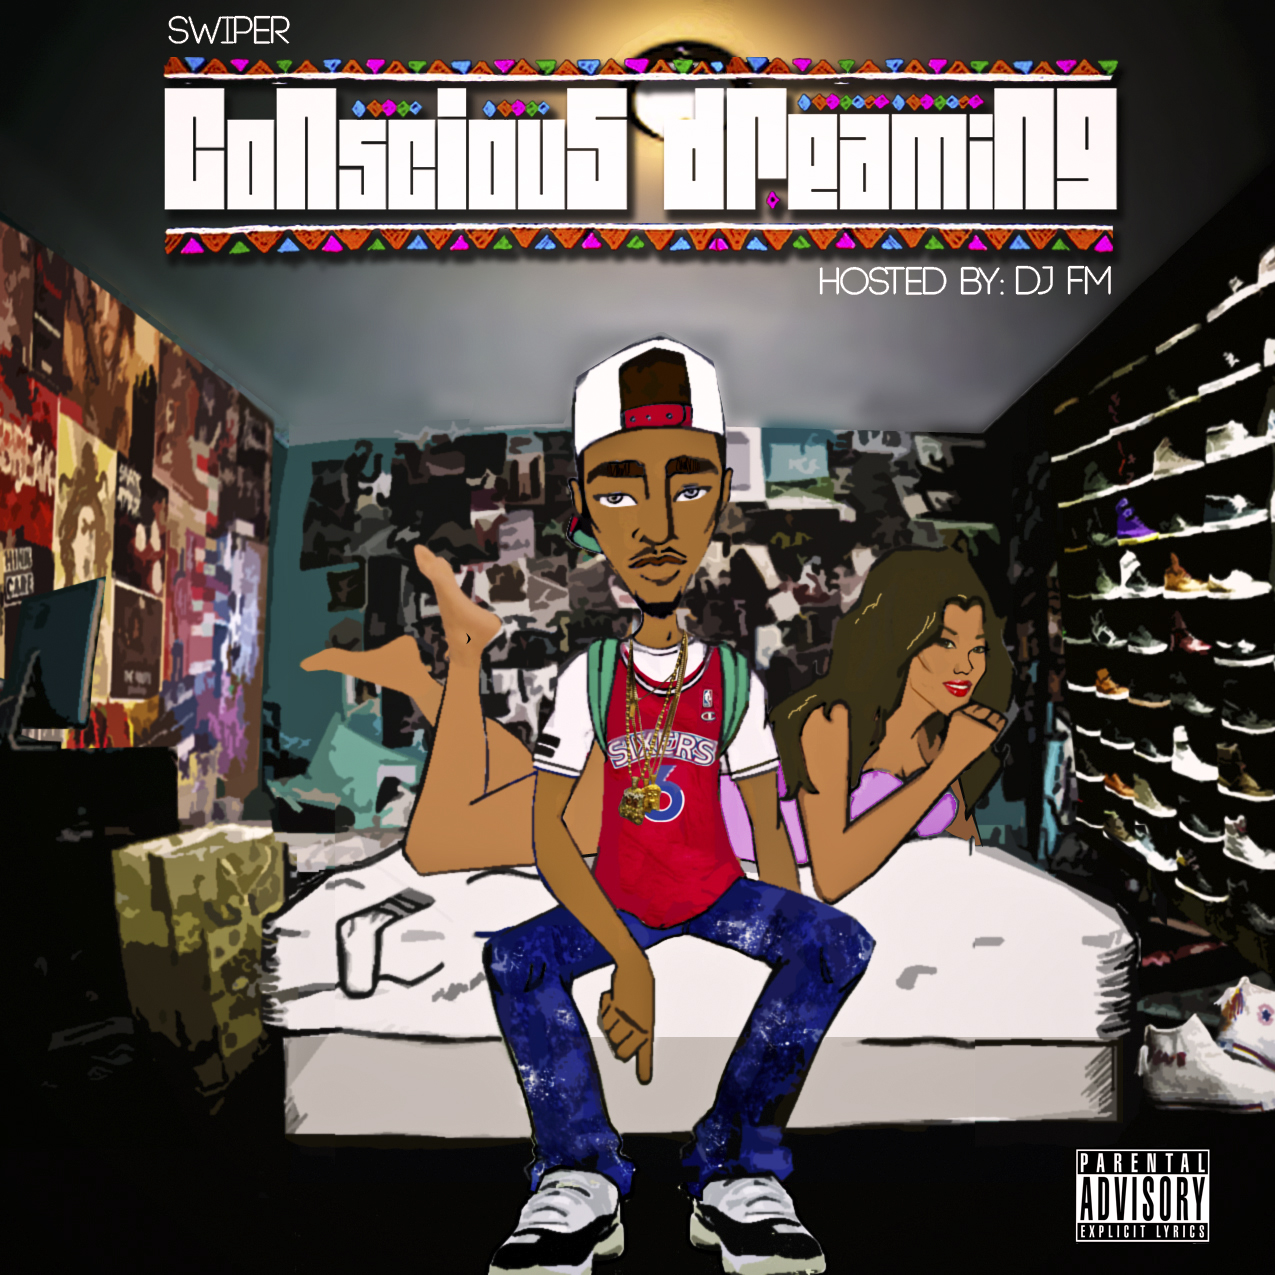 Swiper (@PhratTeam_Swipe) – Conscious Dreaming (Mixtape) (Hosted By @PhratTeam_FM)